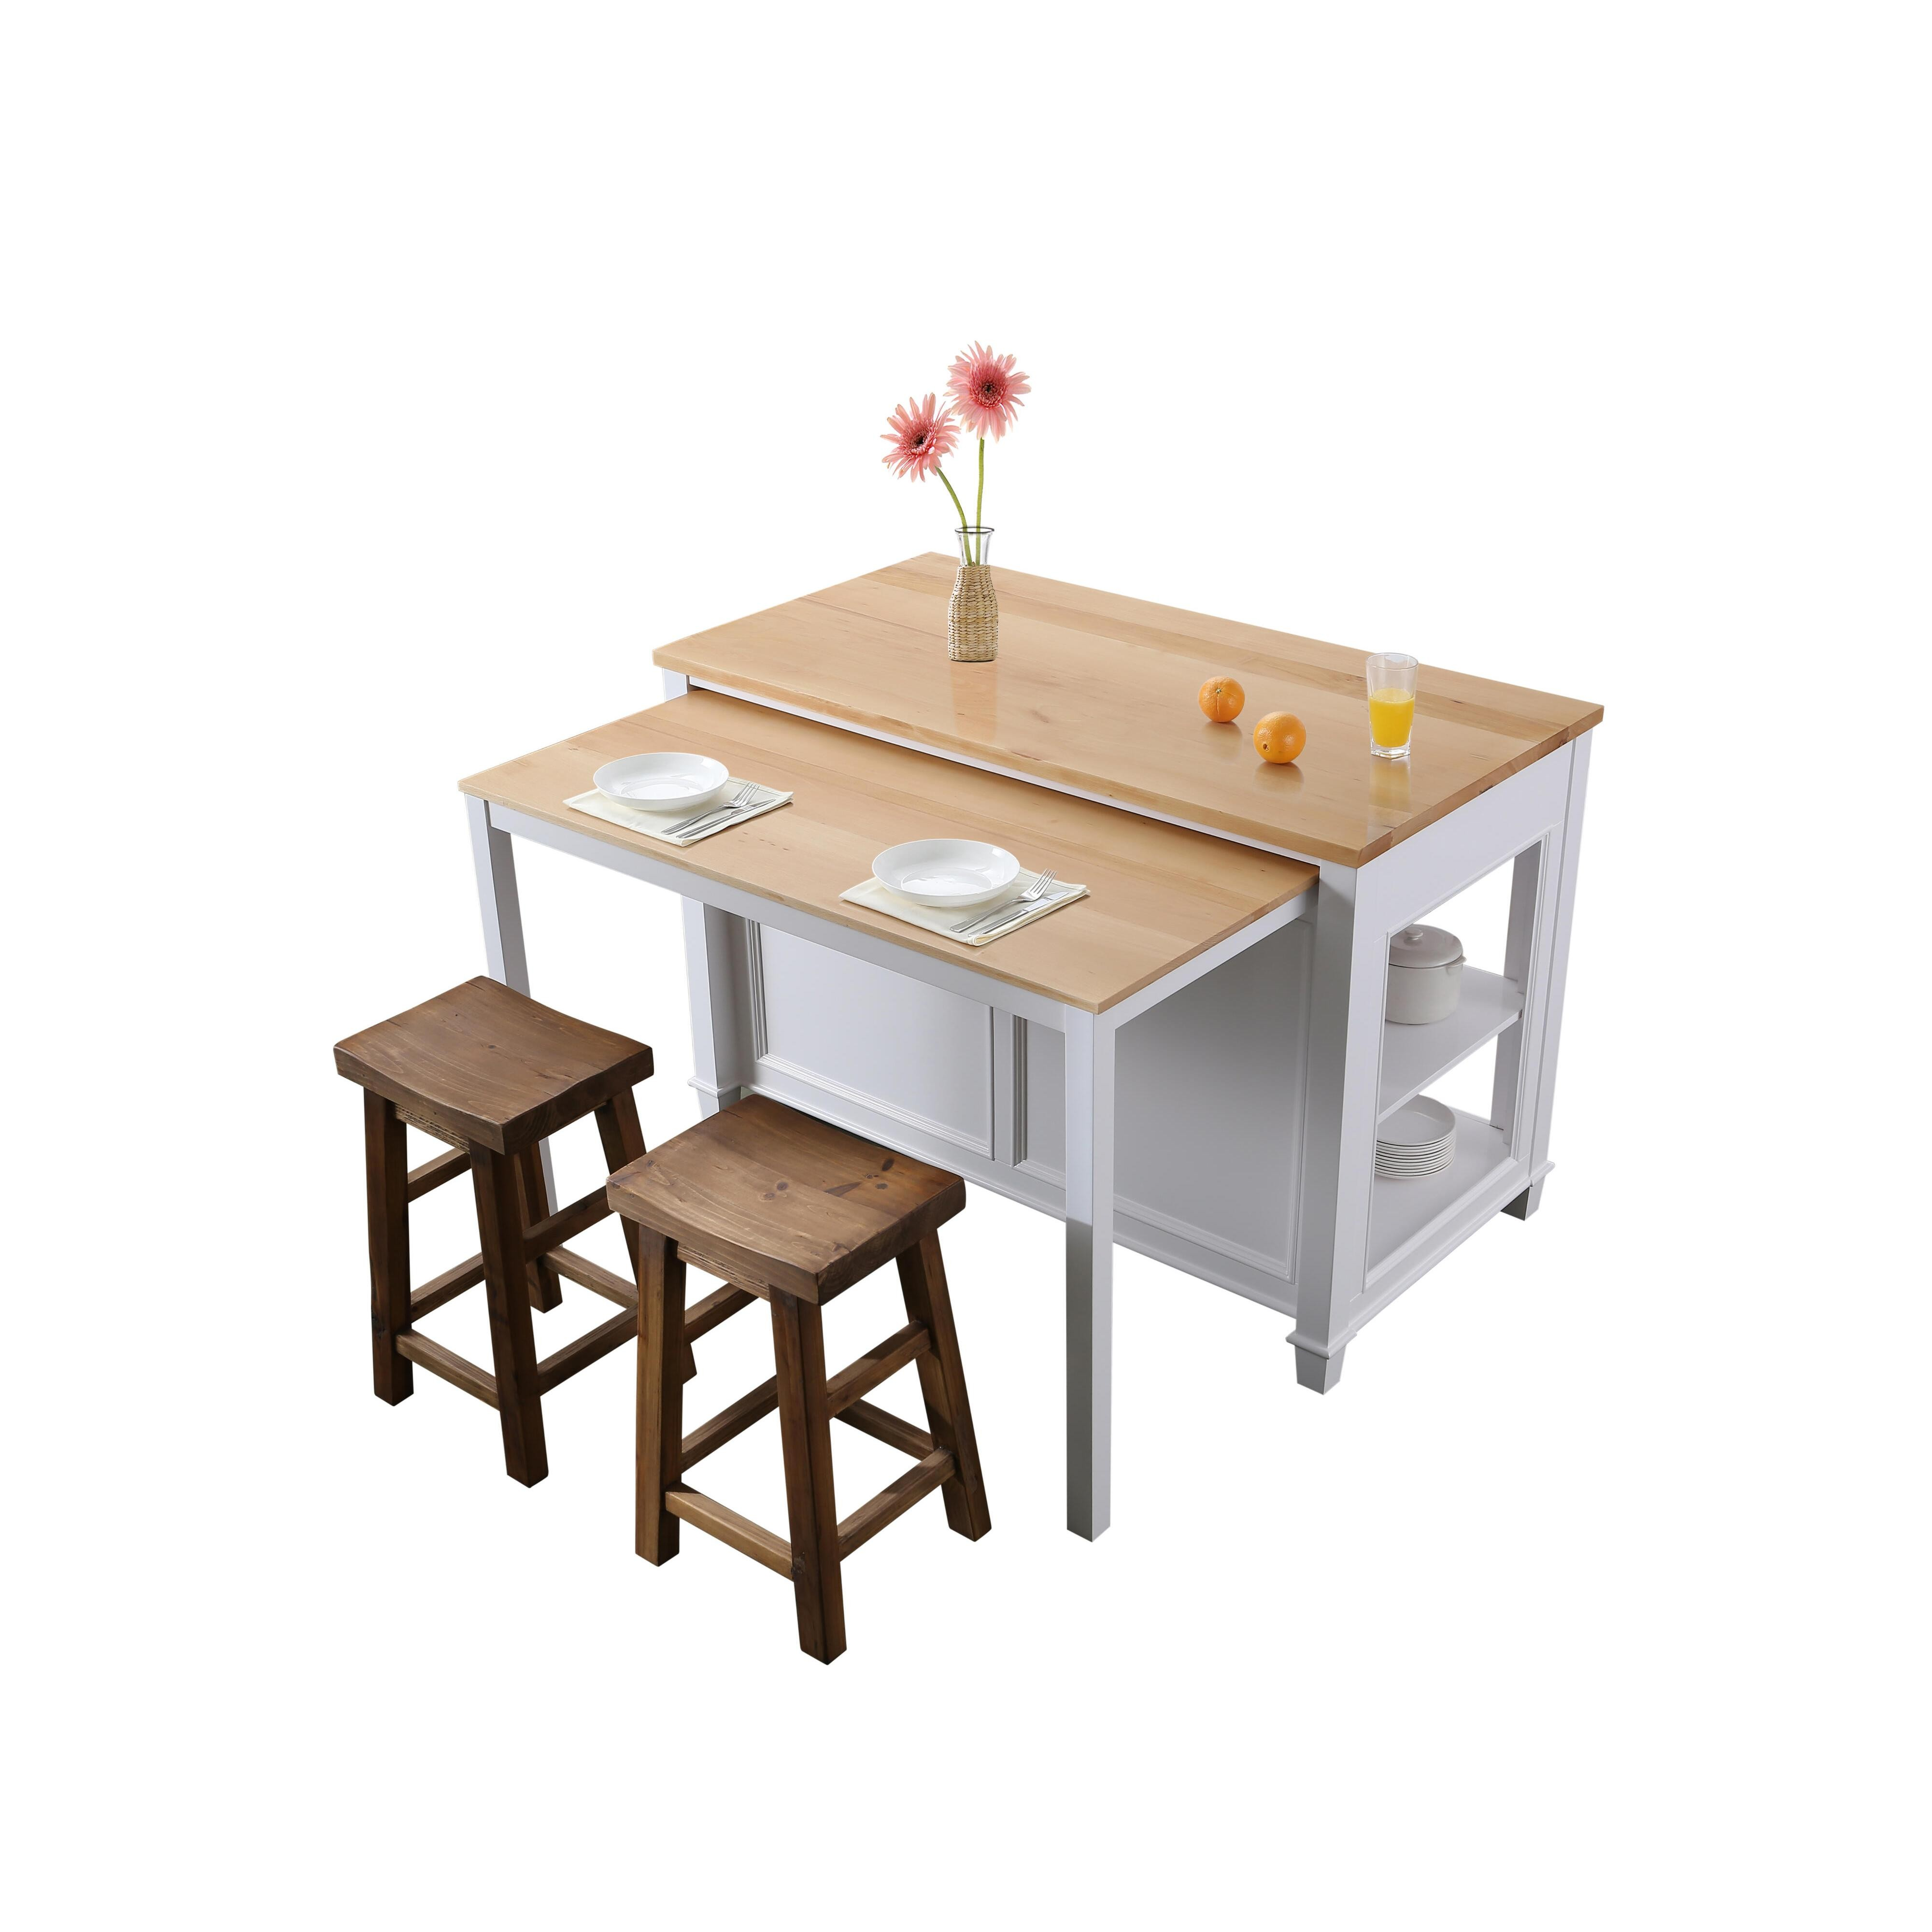 Design Element Kd 01 W Medley 54 Inch Kitchen Island With Slide Out Table In White Kd 01 W Kd01w